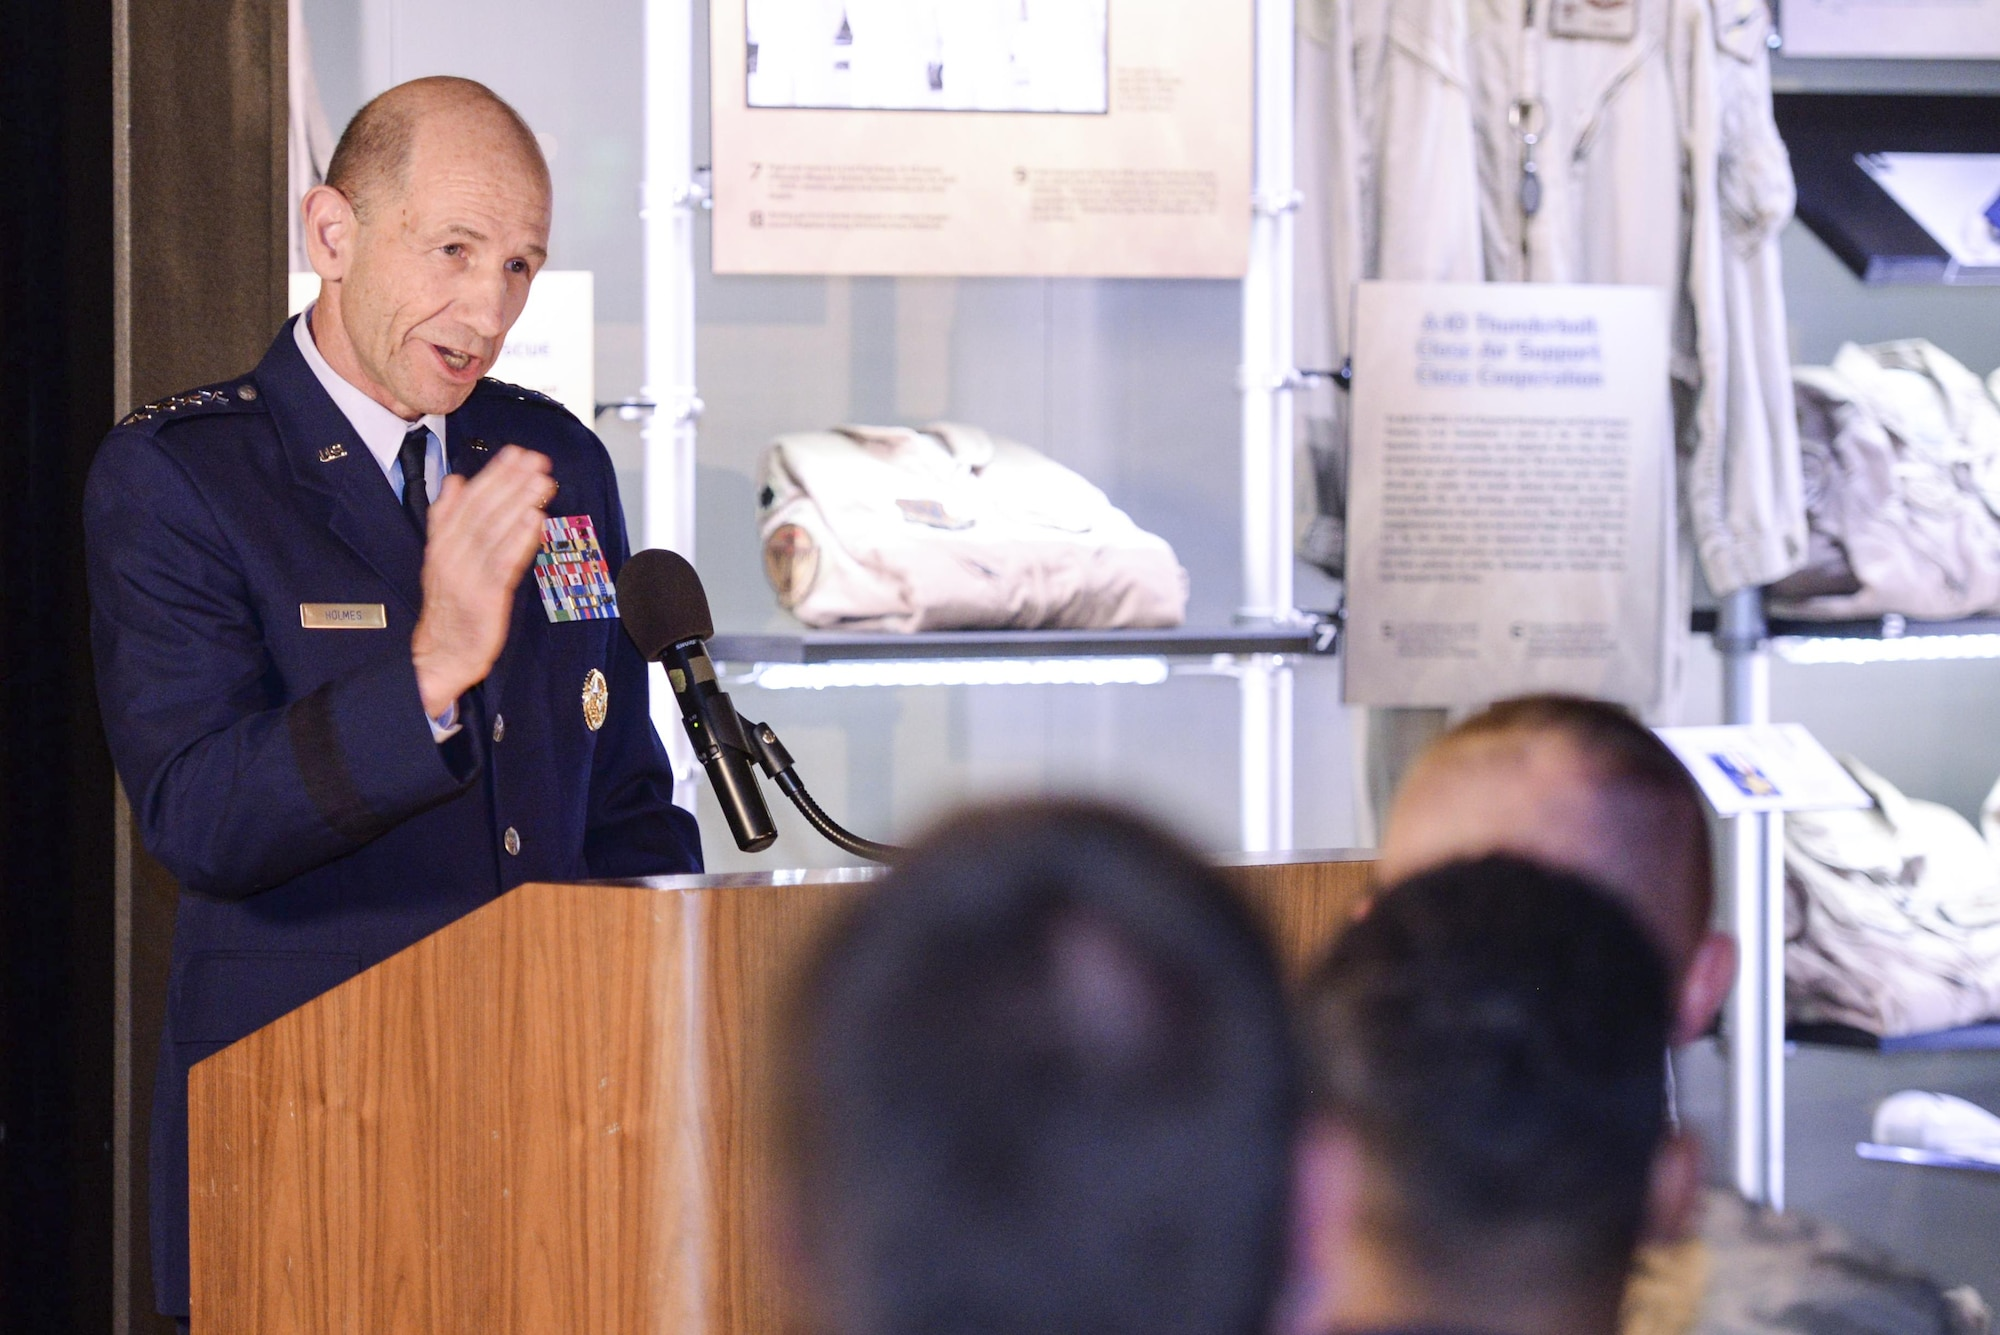 U.S. Air Force Gen. Mike Holmes, commander, Air Combat Command, provides remarks during the Silver Star medal presentation for retired Air Force Lt. Col. Gregory Thornton at the National Museum of the United States Air Force in Dayton, Ohio, June 30, 2017. Thornton received the metal for his actions on April 6, 2003 while supporting 'Advance 33,' the call sign for a ground forward air controller attached to Task Force 2nd Battalion, 69th Armor, during combat operations in Iraq. The Silver Star is the third highest medal for valor in the military. (U.S. Air Force photo by Wesley Farnsworth)